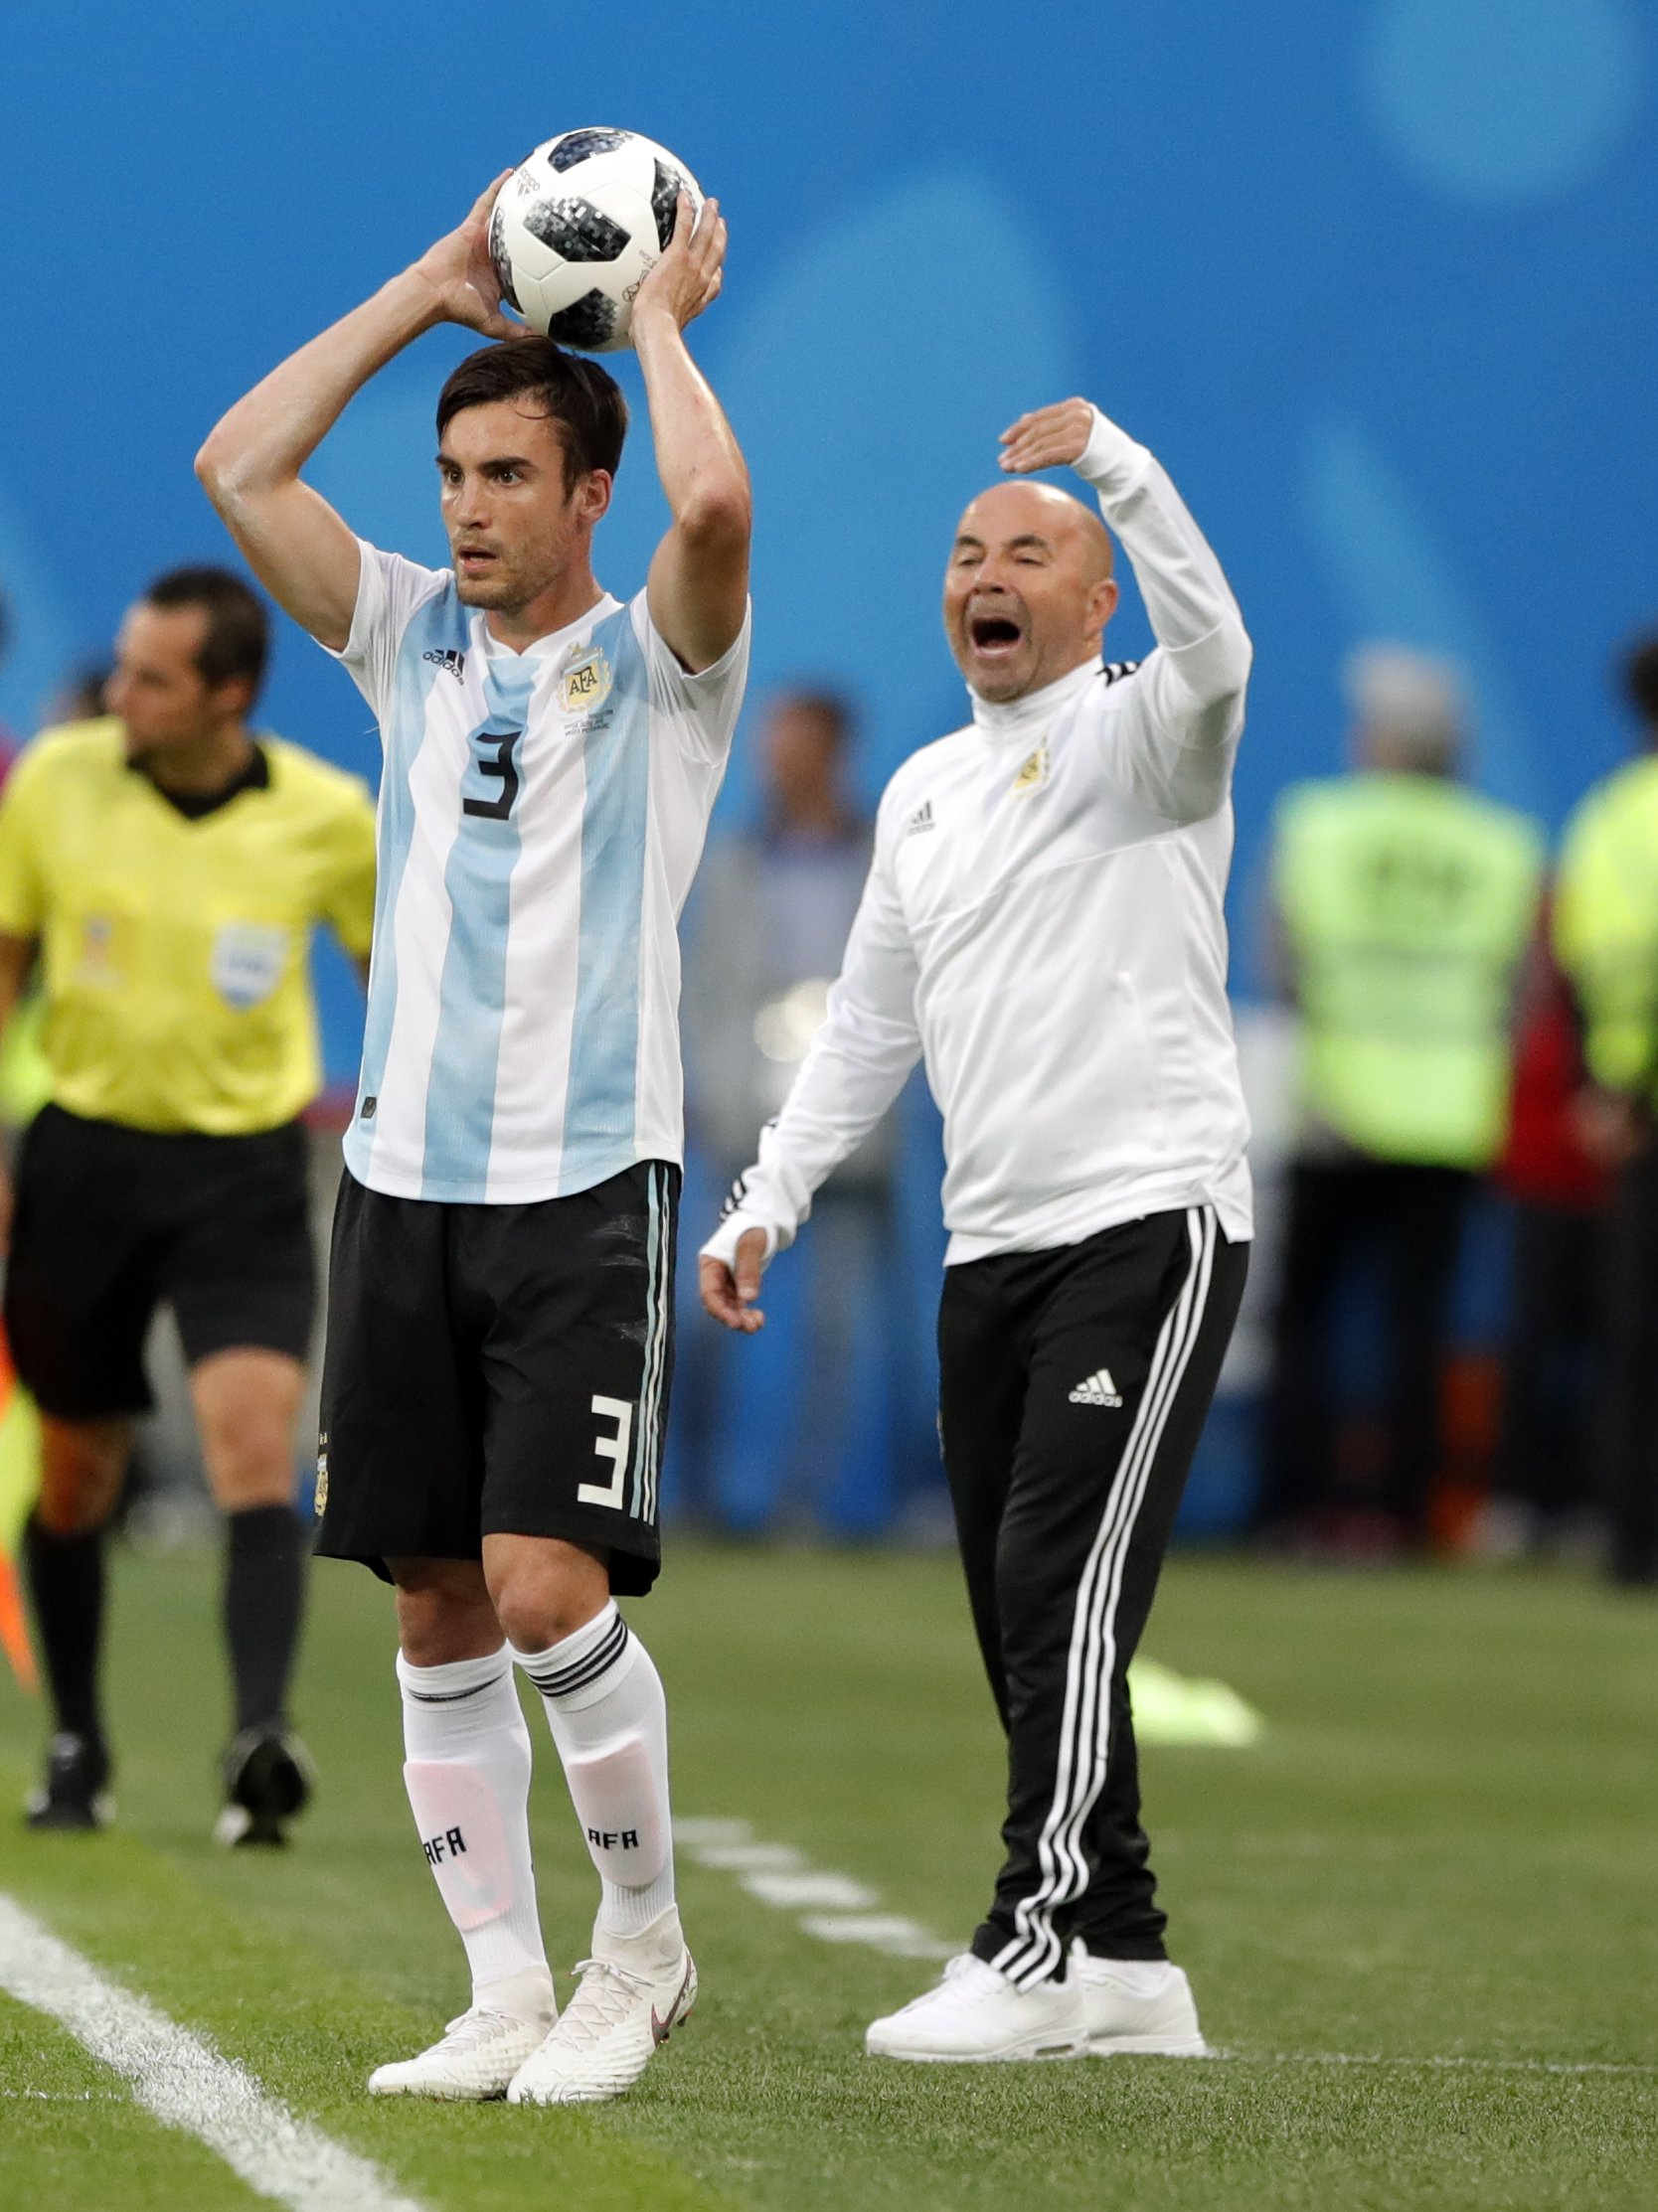 Argentina has big weaknesses to address before facing France